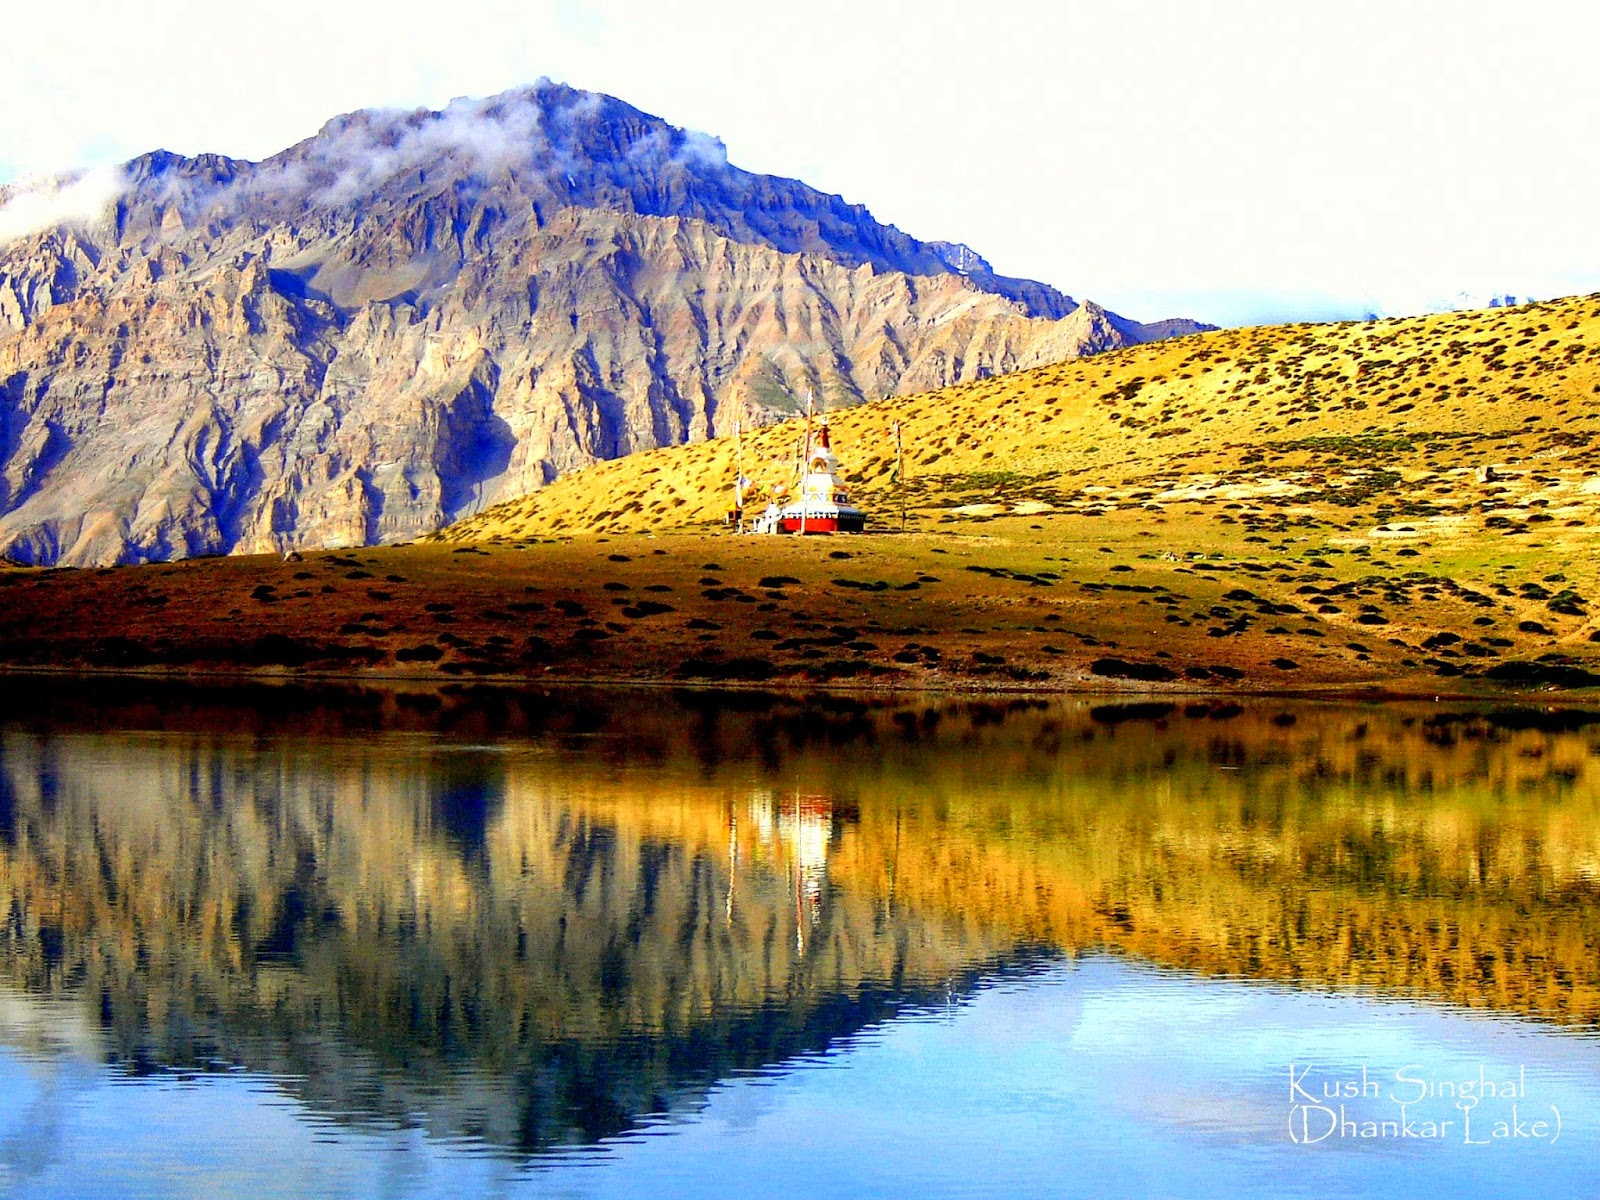 Dhankar lake Spiti, spiti, Spiti valley